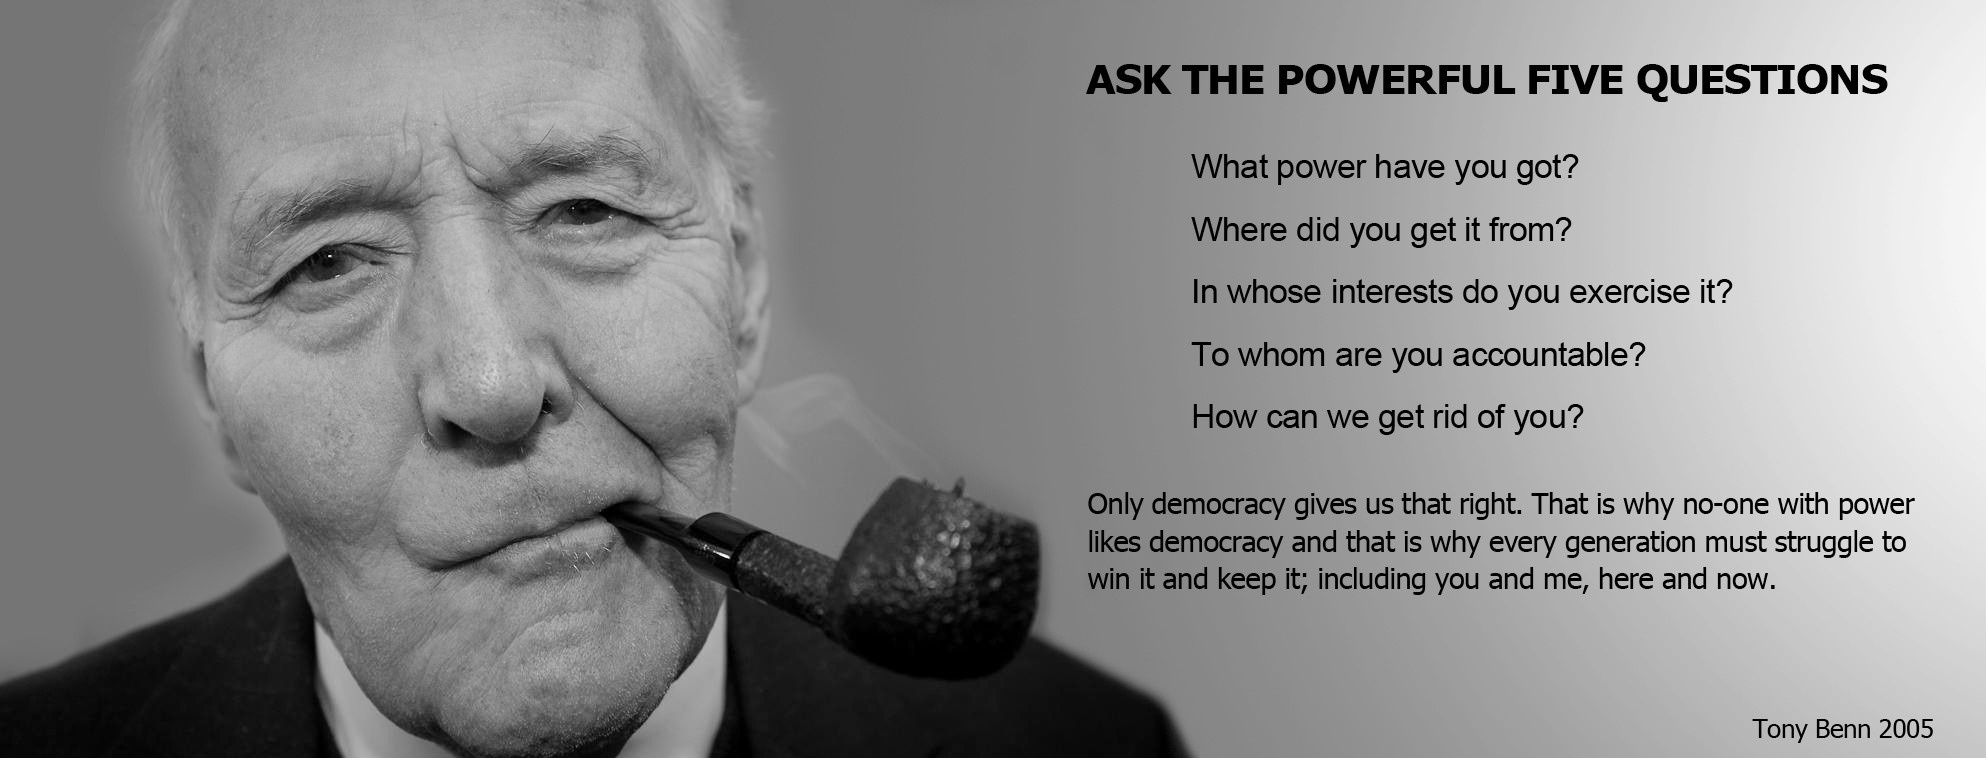 Tony Benn's quote #2